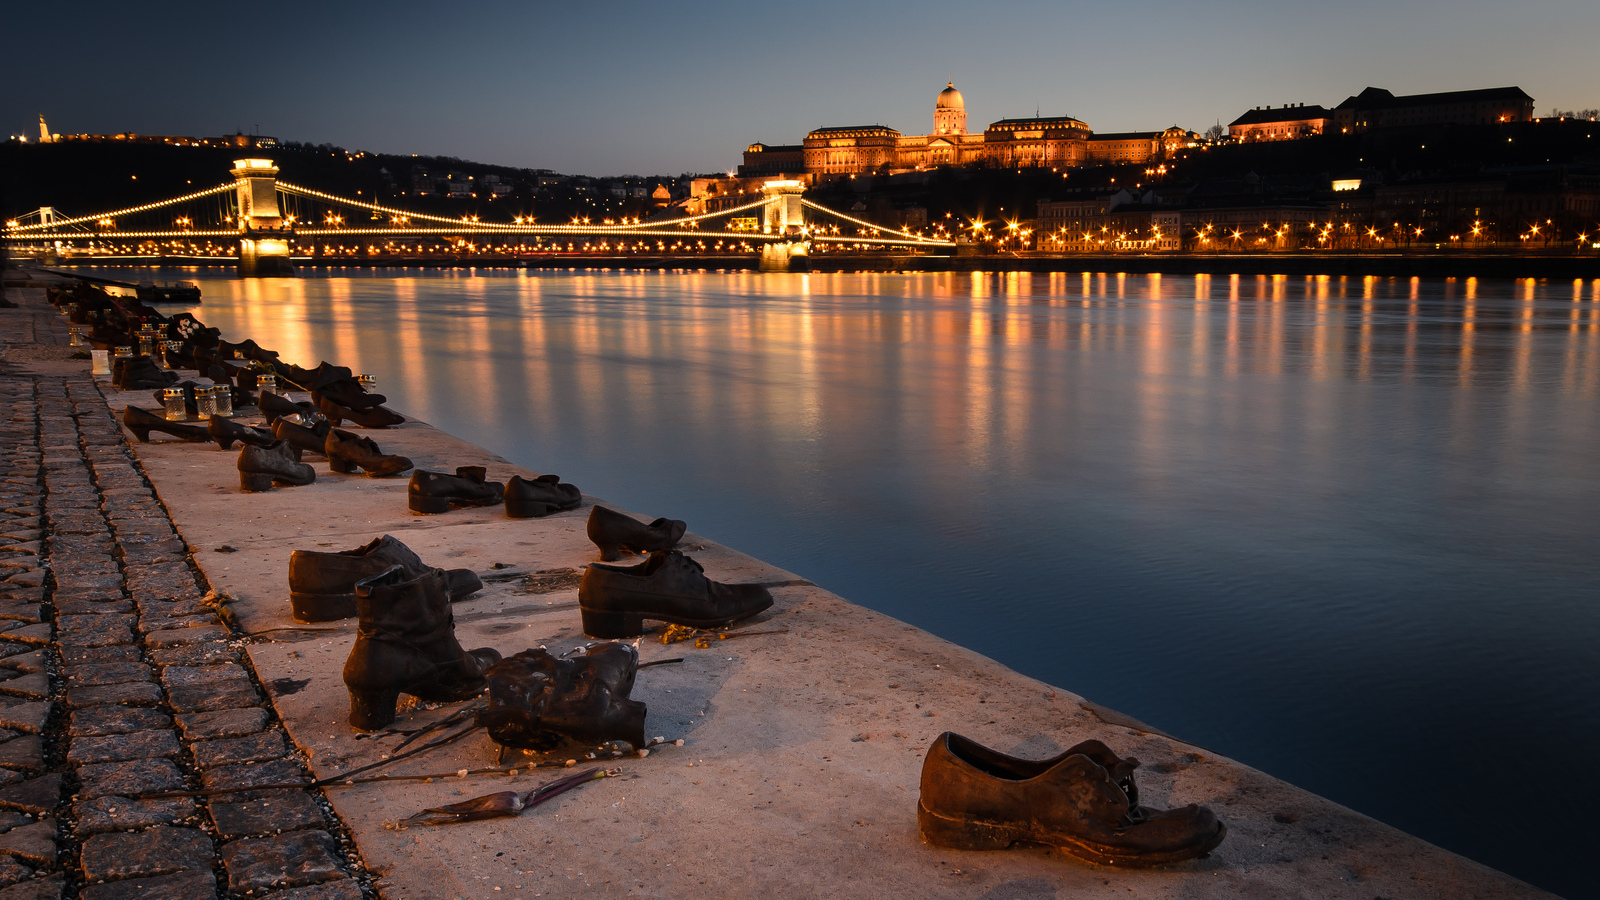 shoes-monument-budapest-lustforthesublime